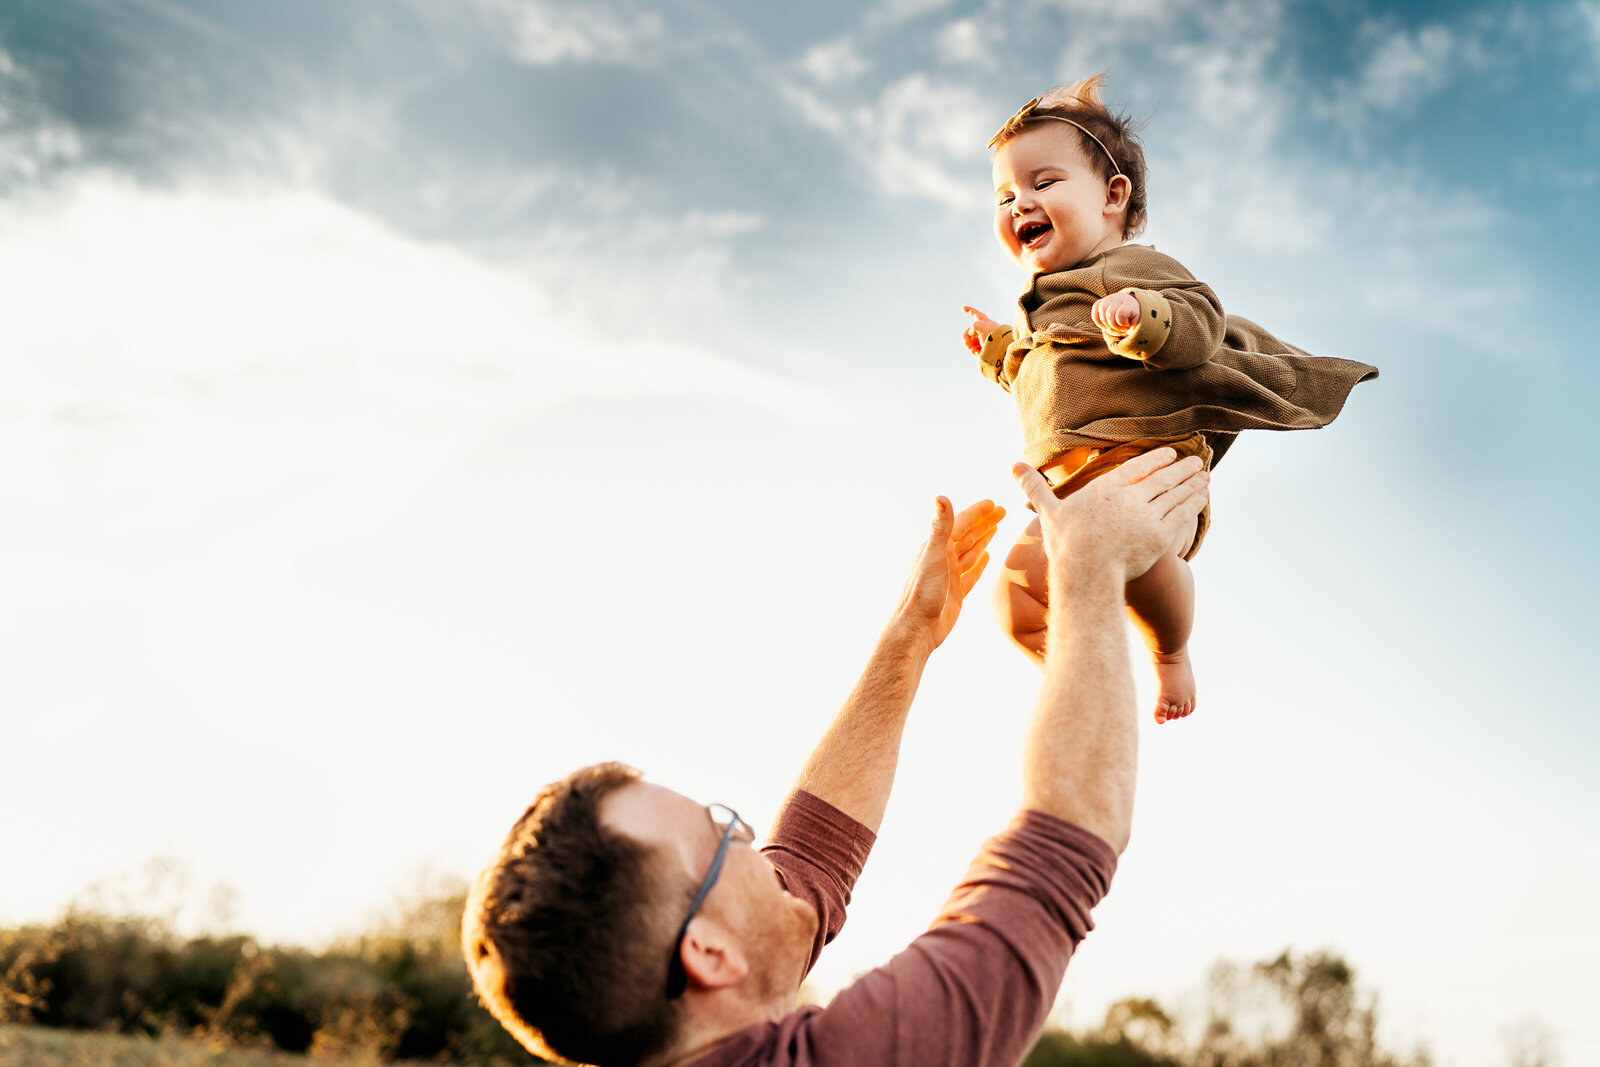 dad tossing baby into the air